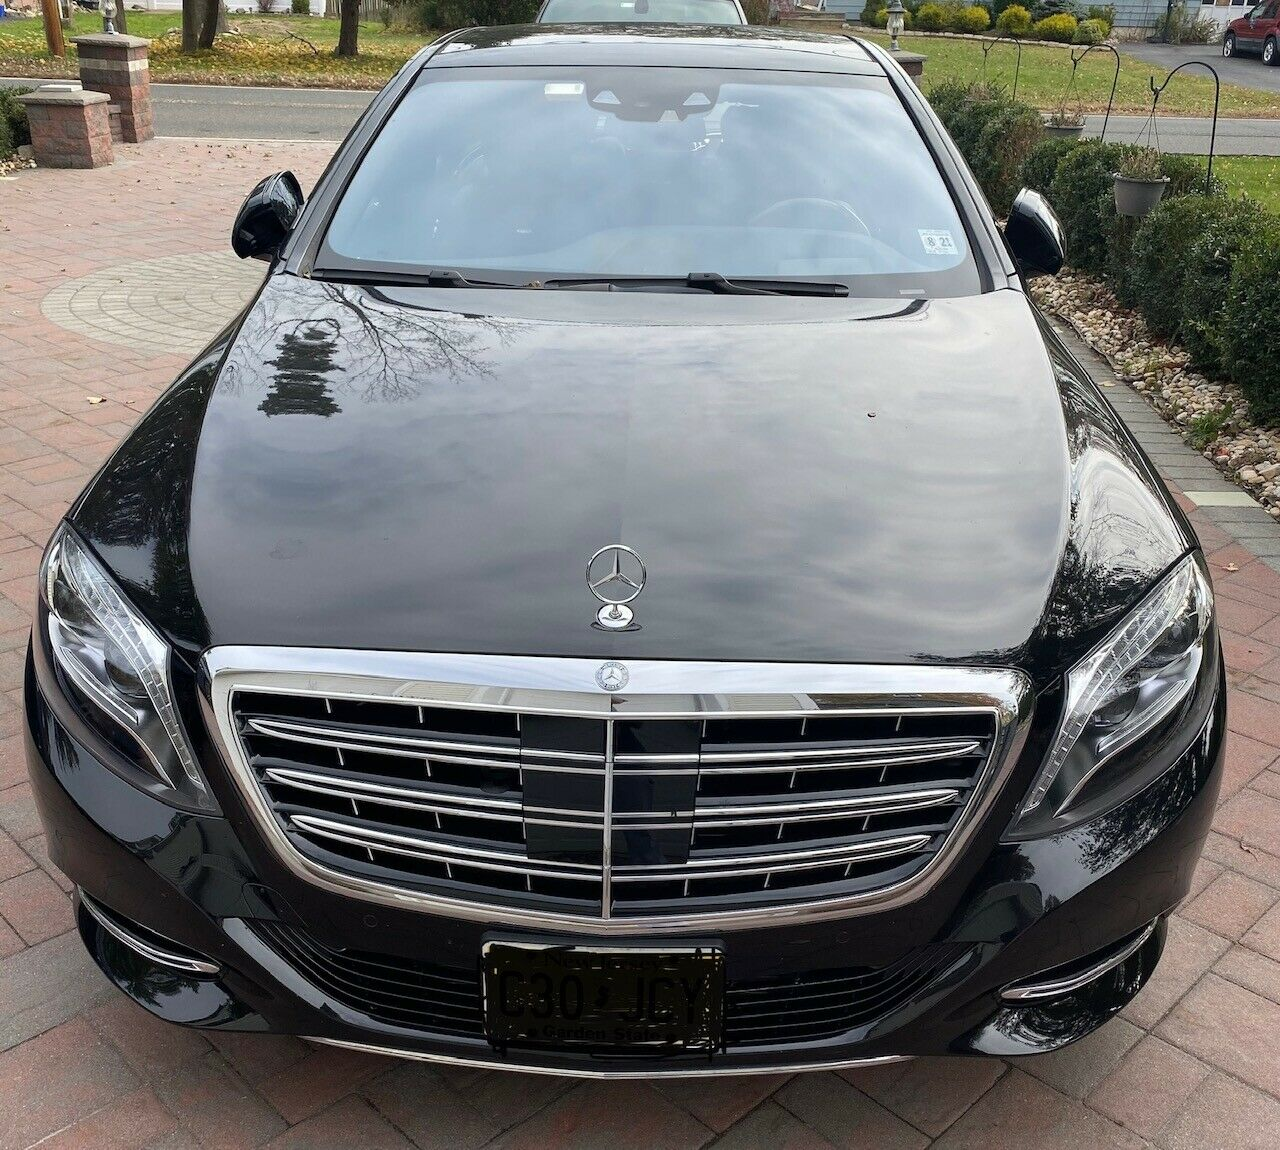 MINT 2016 MERCEDES S600 MAYBACH 10,300 MILES BLACK/BLACK